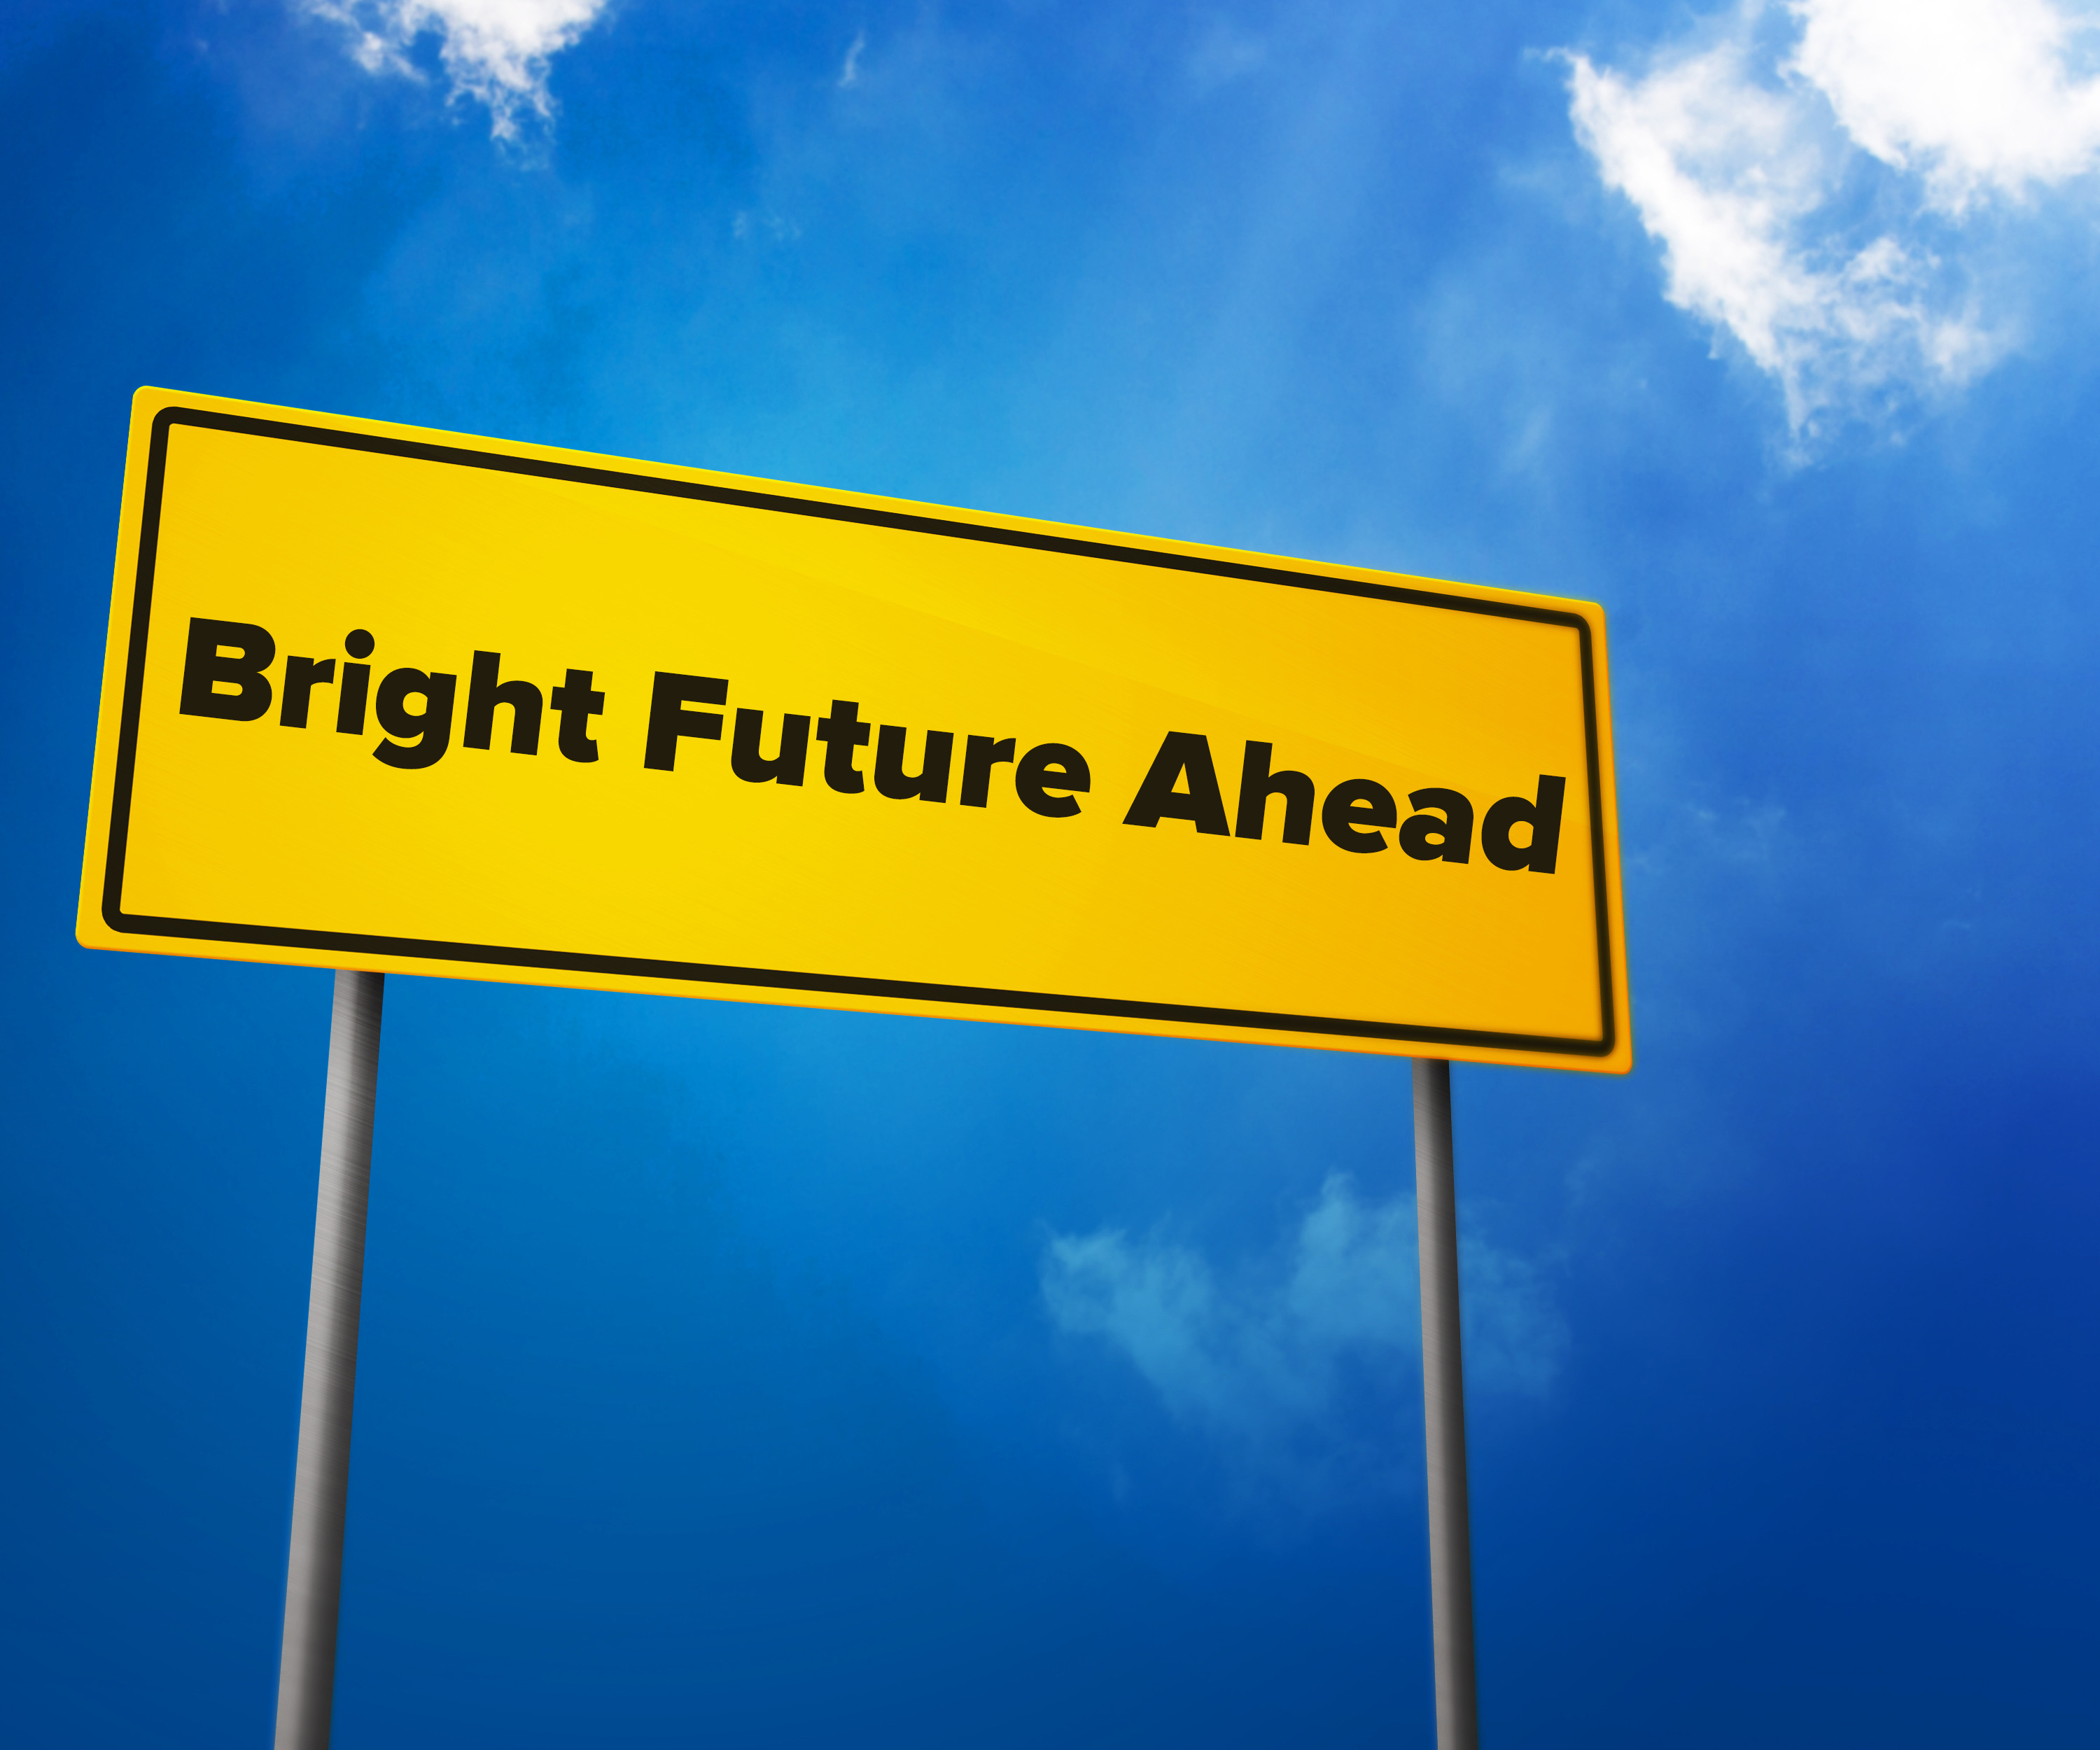 bright future Mi bright future addresses the long-term workforce needs in michigan, especially in high-demand occupations, by supporting the development of an informed, educated.